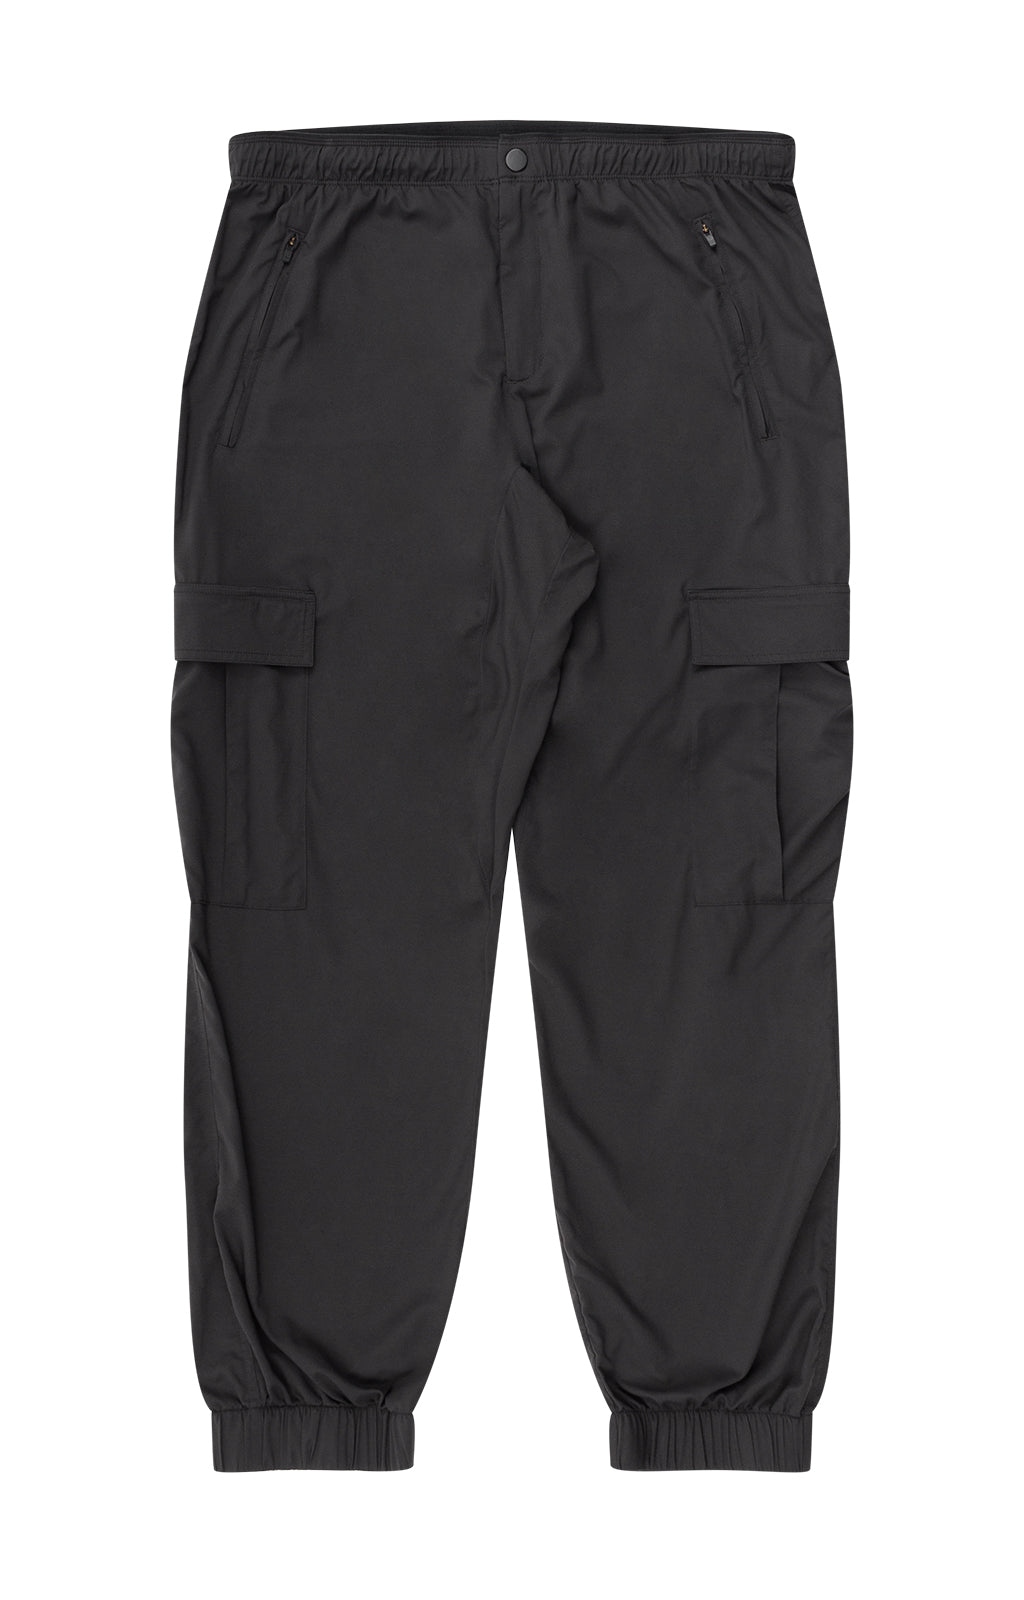 Short pants for small explorers